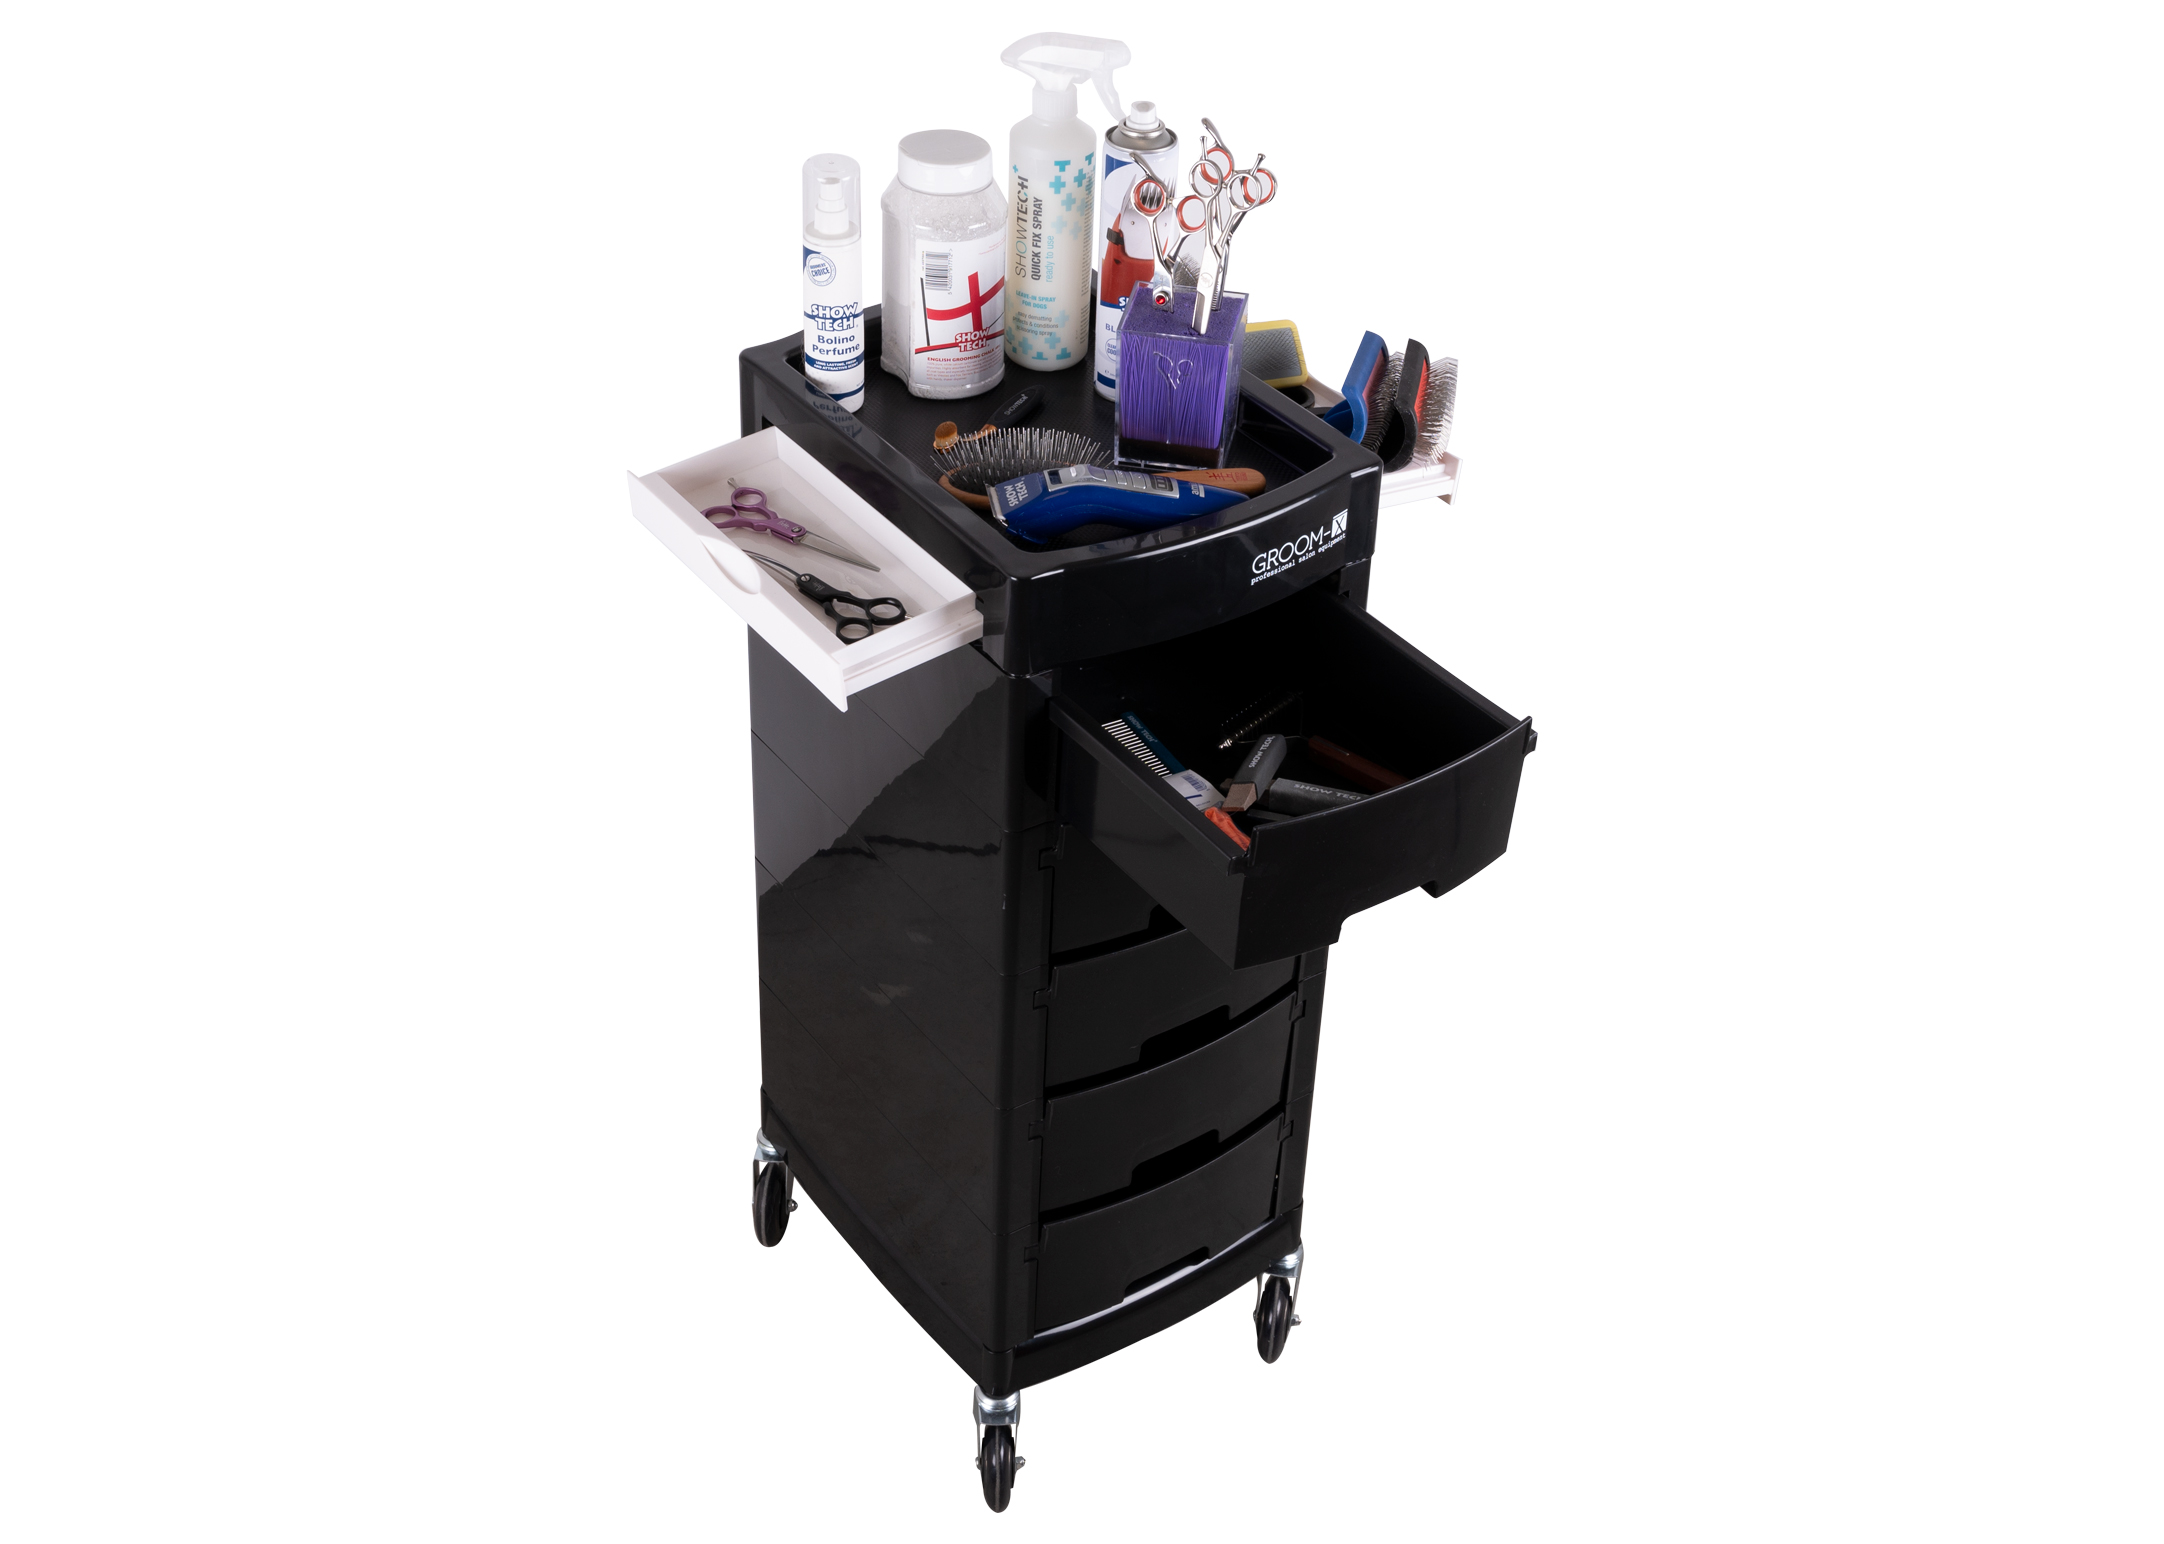 Groom-X Trolley Black Deluxe - closed material cart